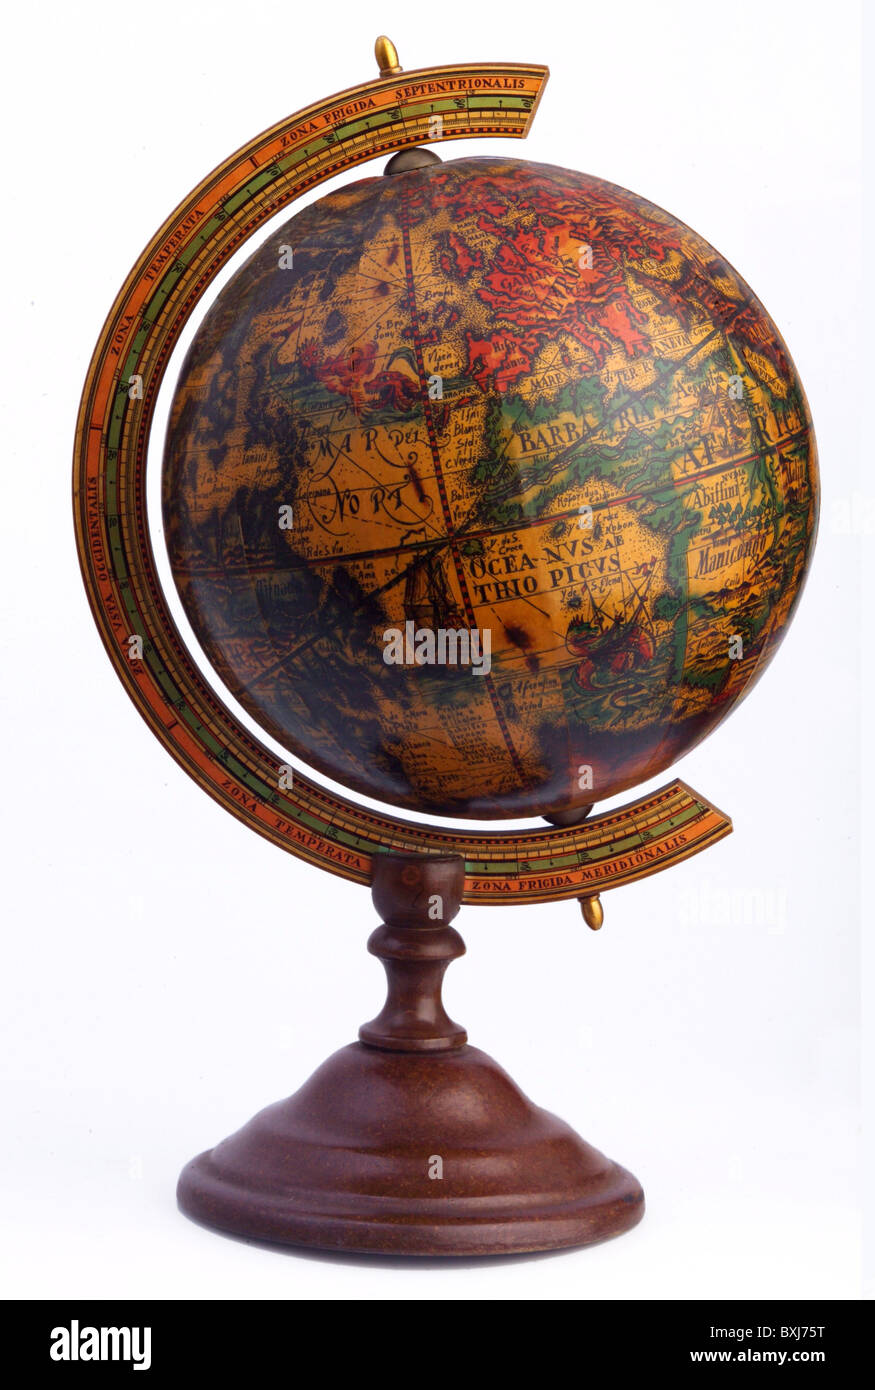 Old world map globe cut out stock images pictures alamy cartography globes globe replication of an old world map from 16th century gumiabroncs Gallery